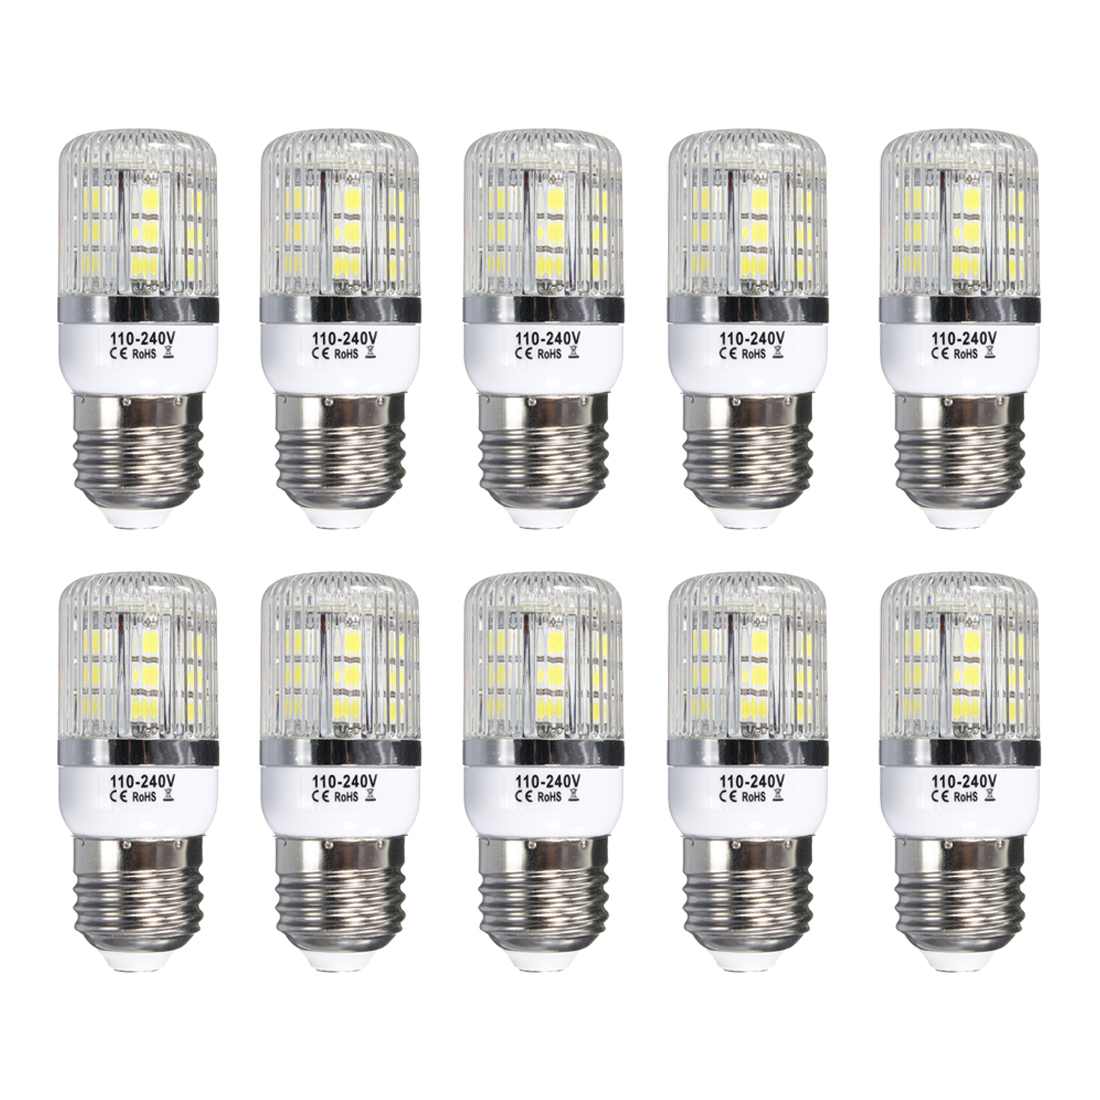 E27 5W Dimmable 27 SMD 5050 LED Corn Light Bulb Lamp Base Type:E27-5W Warm White(3000-3500K) Amount:10 Pcs комплект евростандарт primavelle девуар